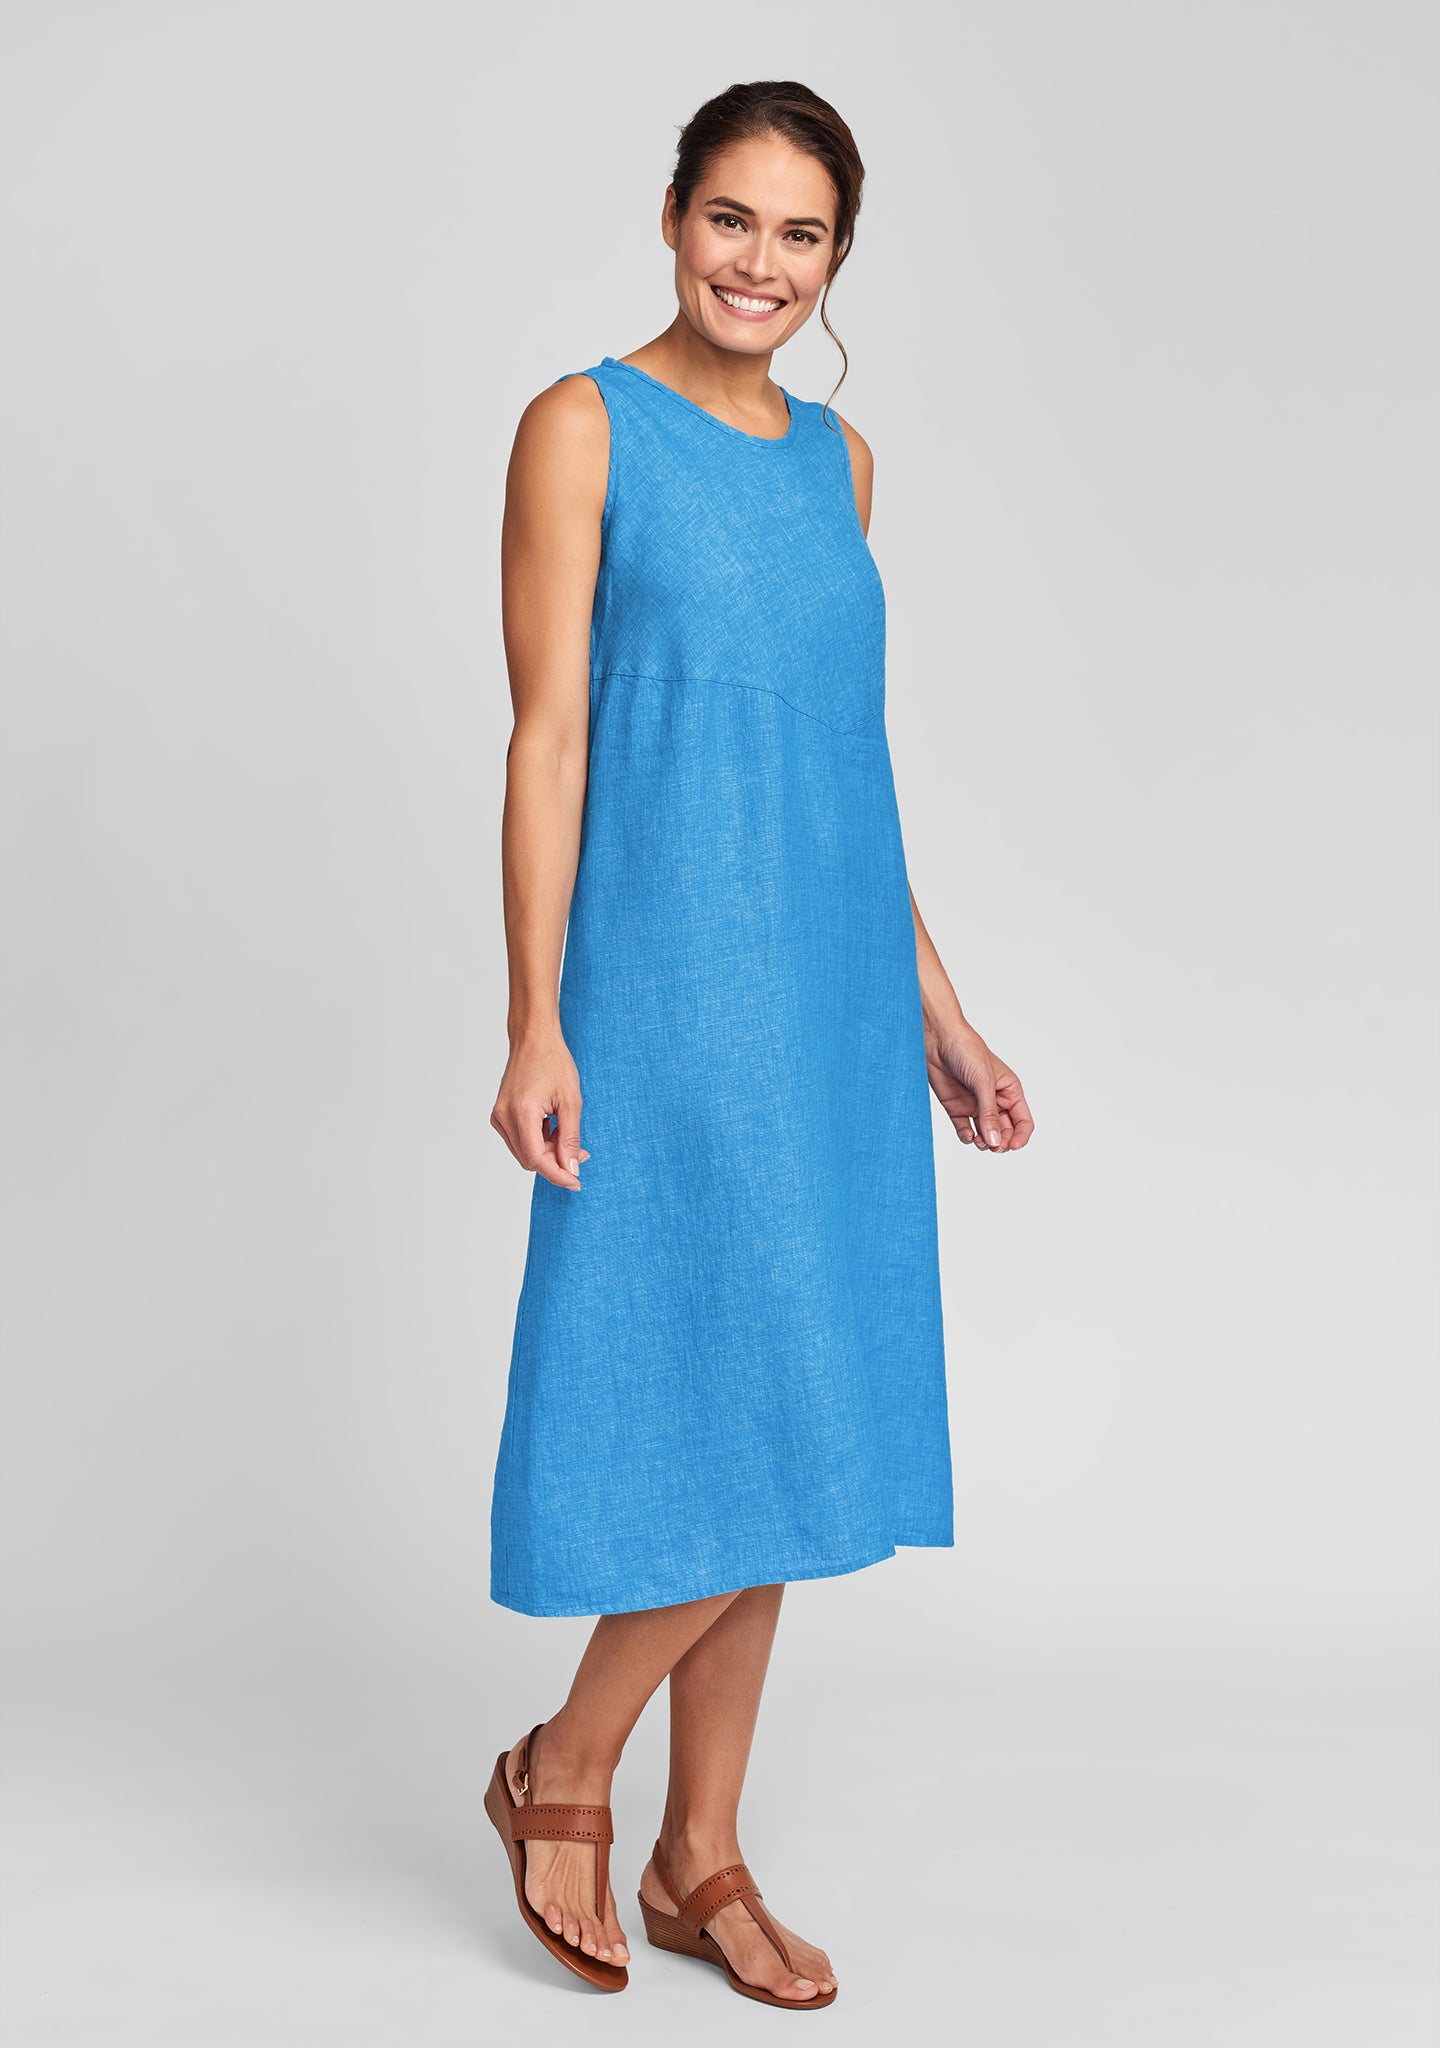 sunrise dress linen midi dress blue